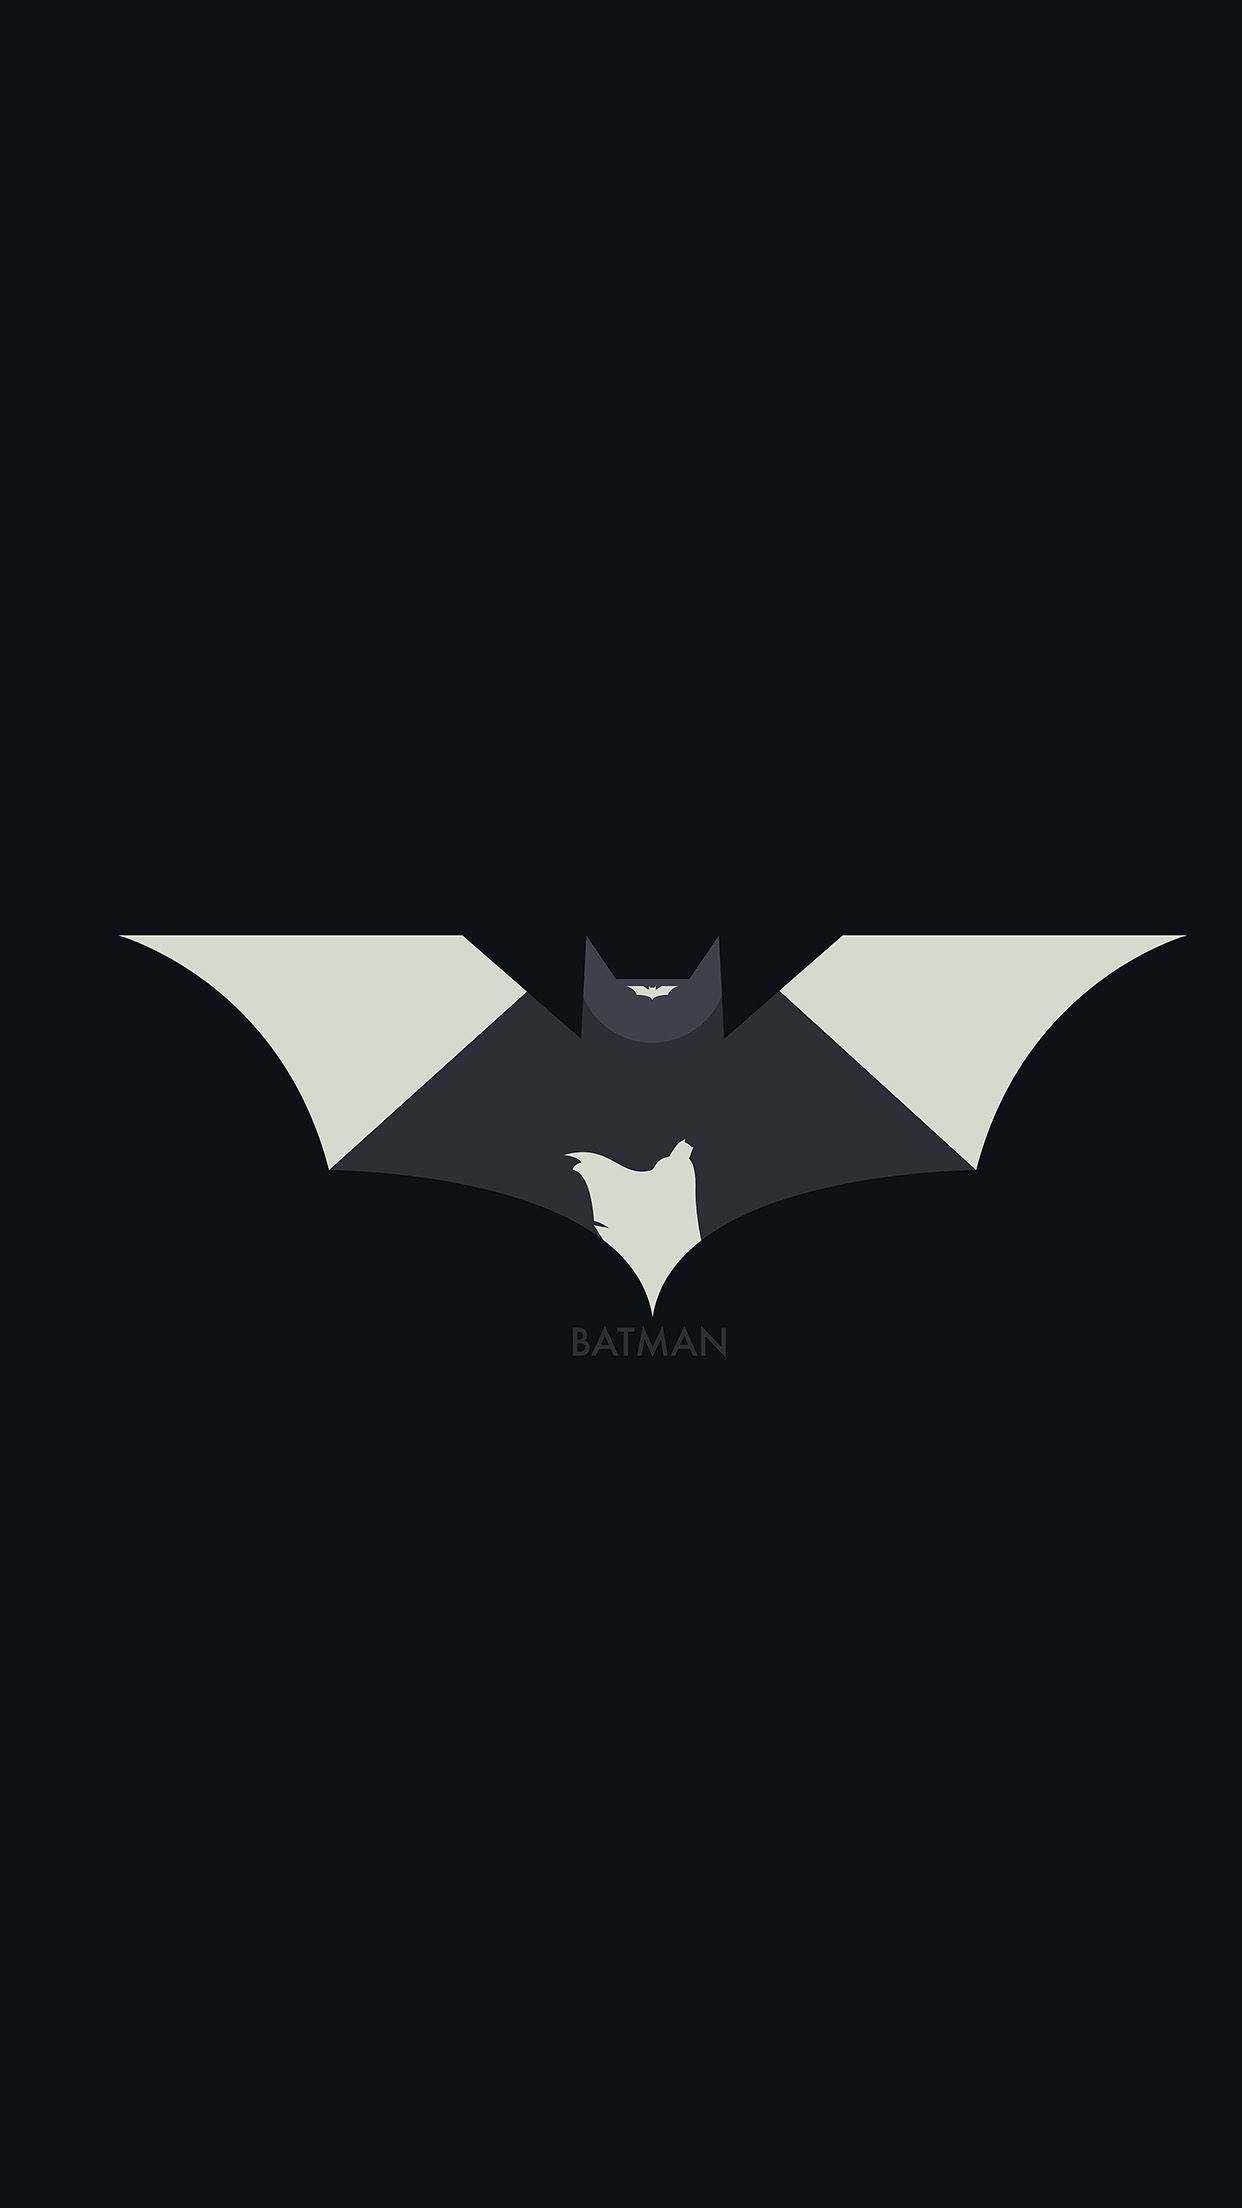 Download Mega Collection Of Cool Iphone Wallpapers Batman